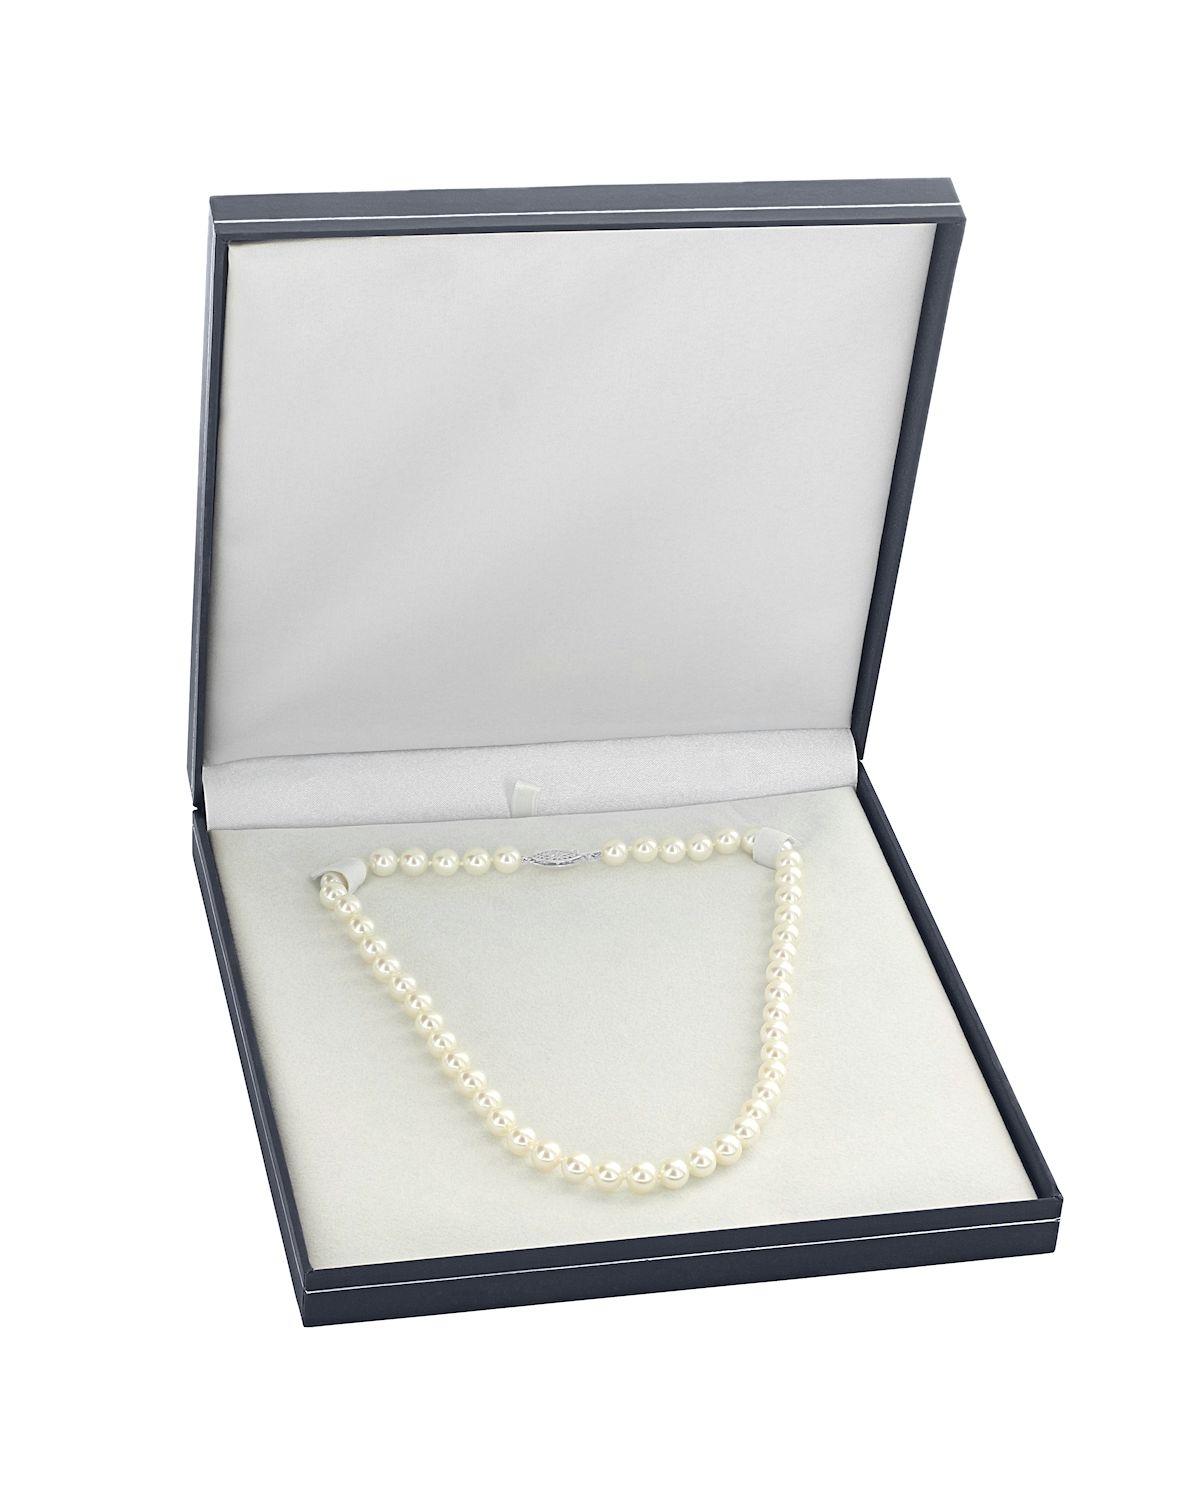 7.5-8.0mm Japanese Akoya White Pearl Necklace- AAA Quality - Fourth Image